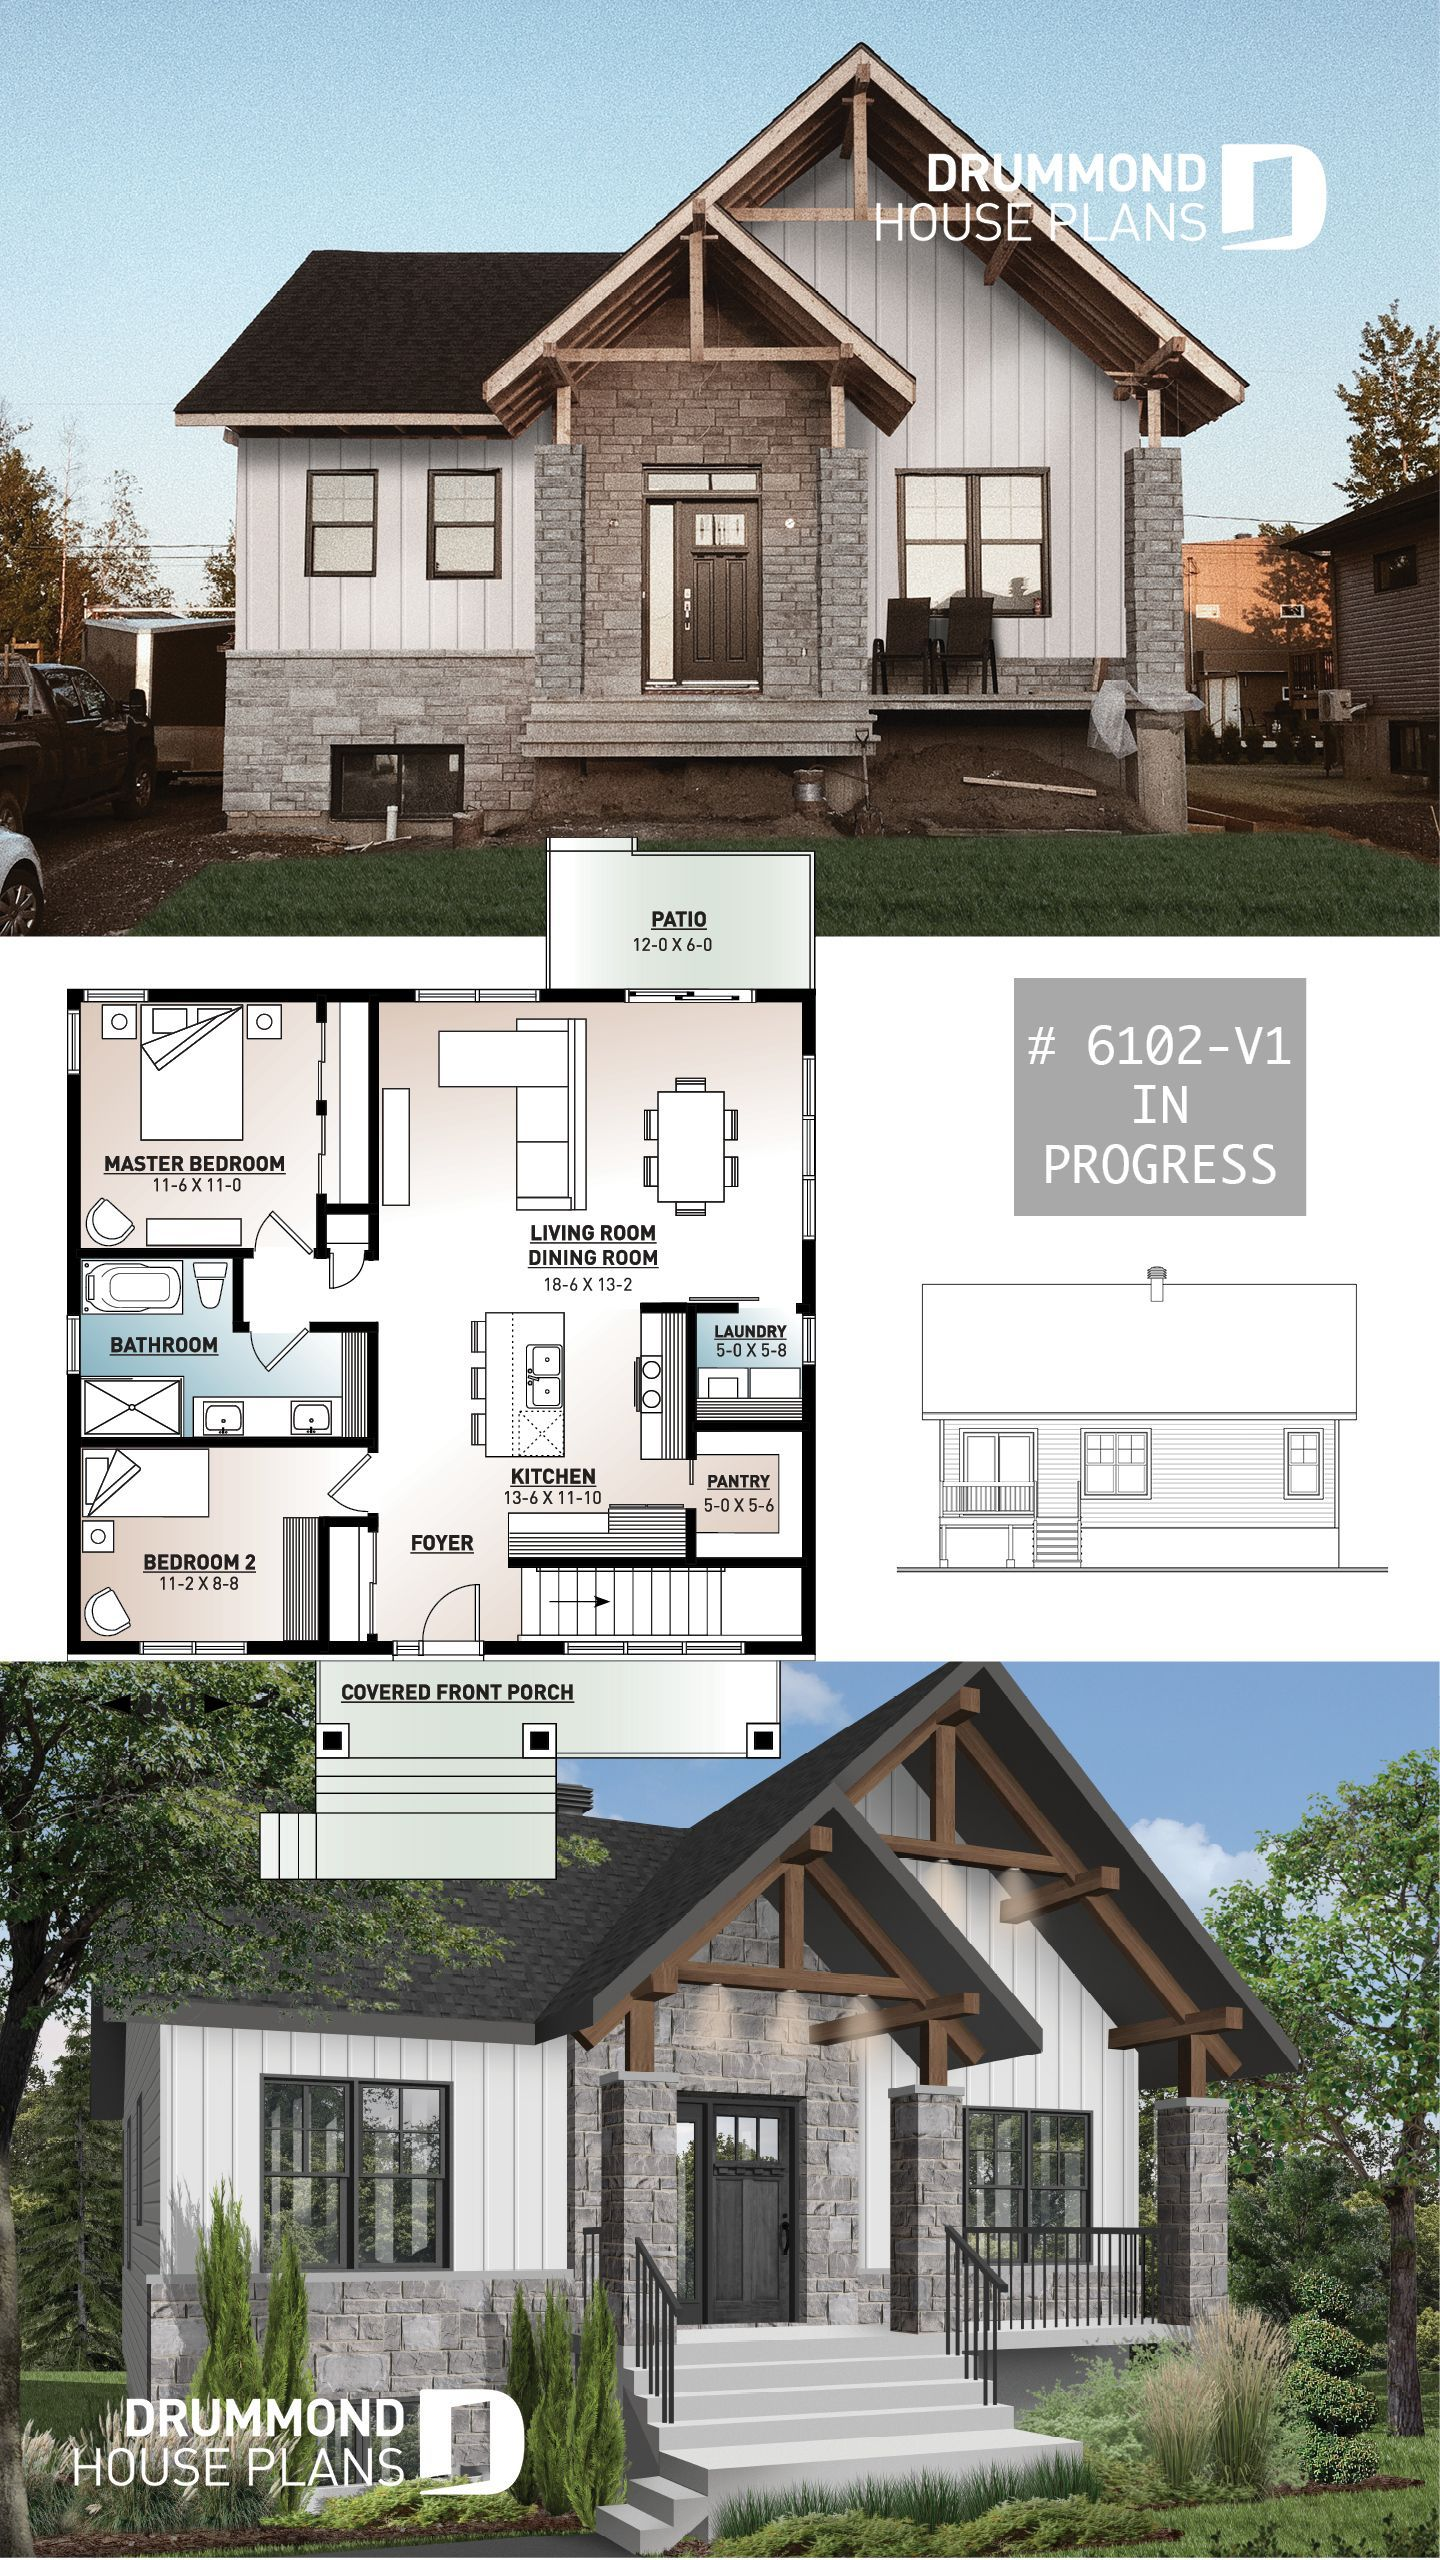 Pin By Home Decoration On Home Design In 2020 Craftsman House Plans Craftsman Style House Plans Small Craftsman Style House Plans